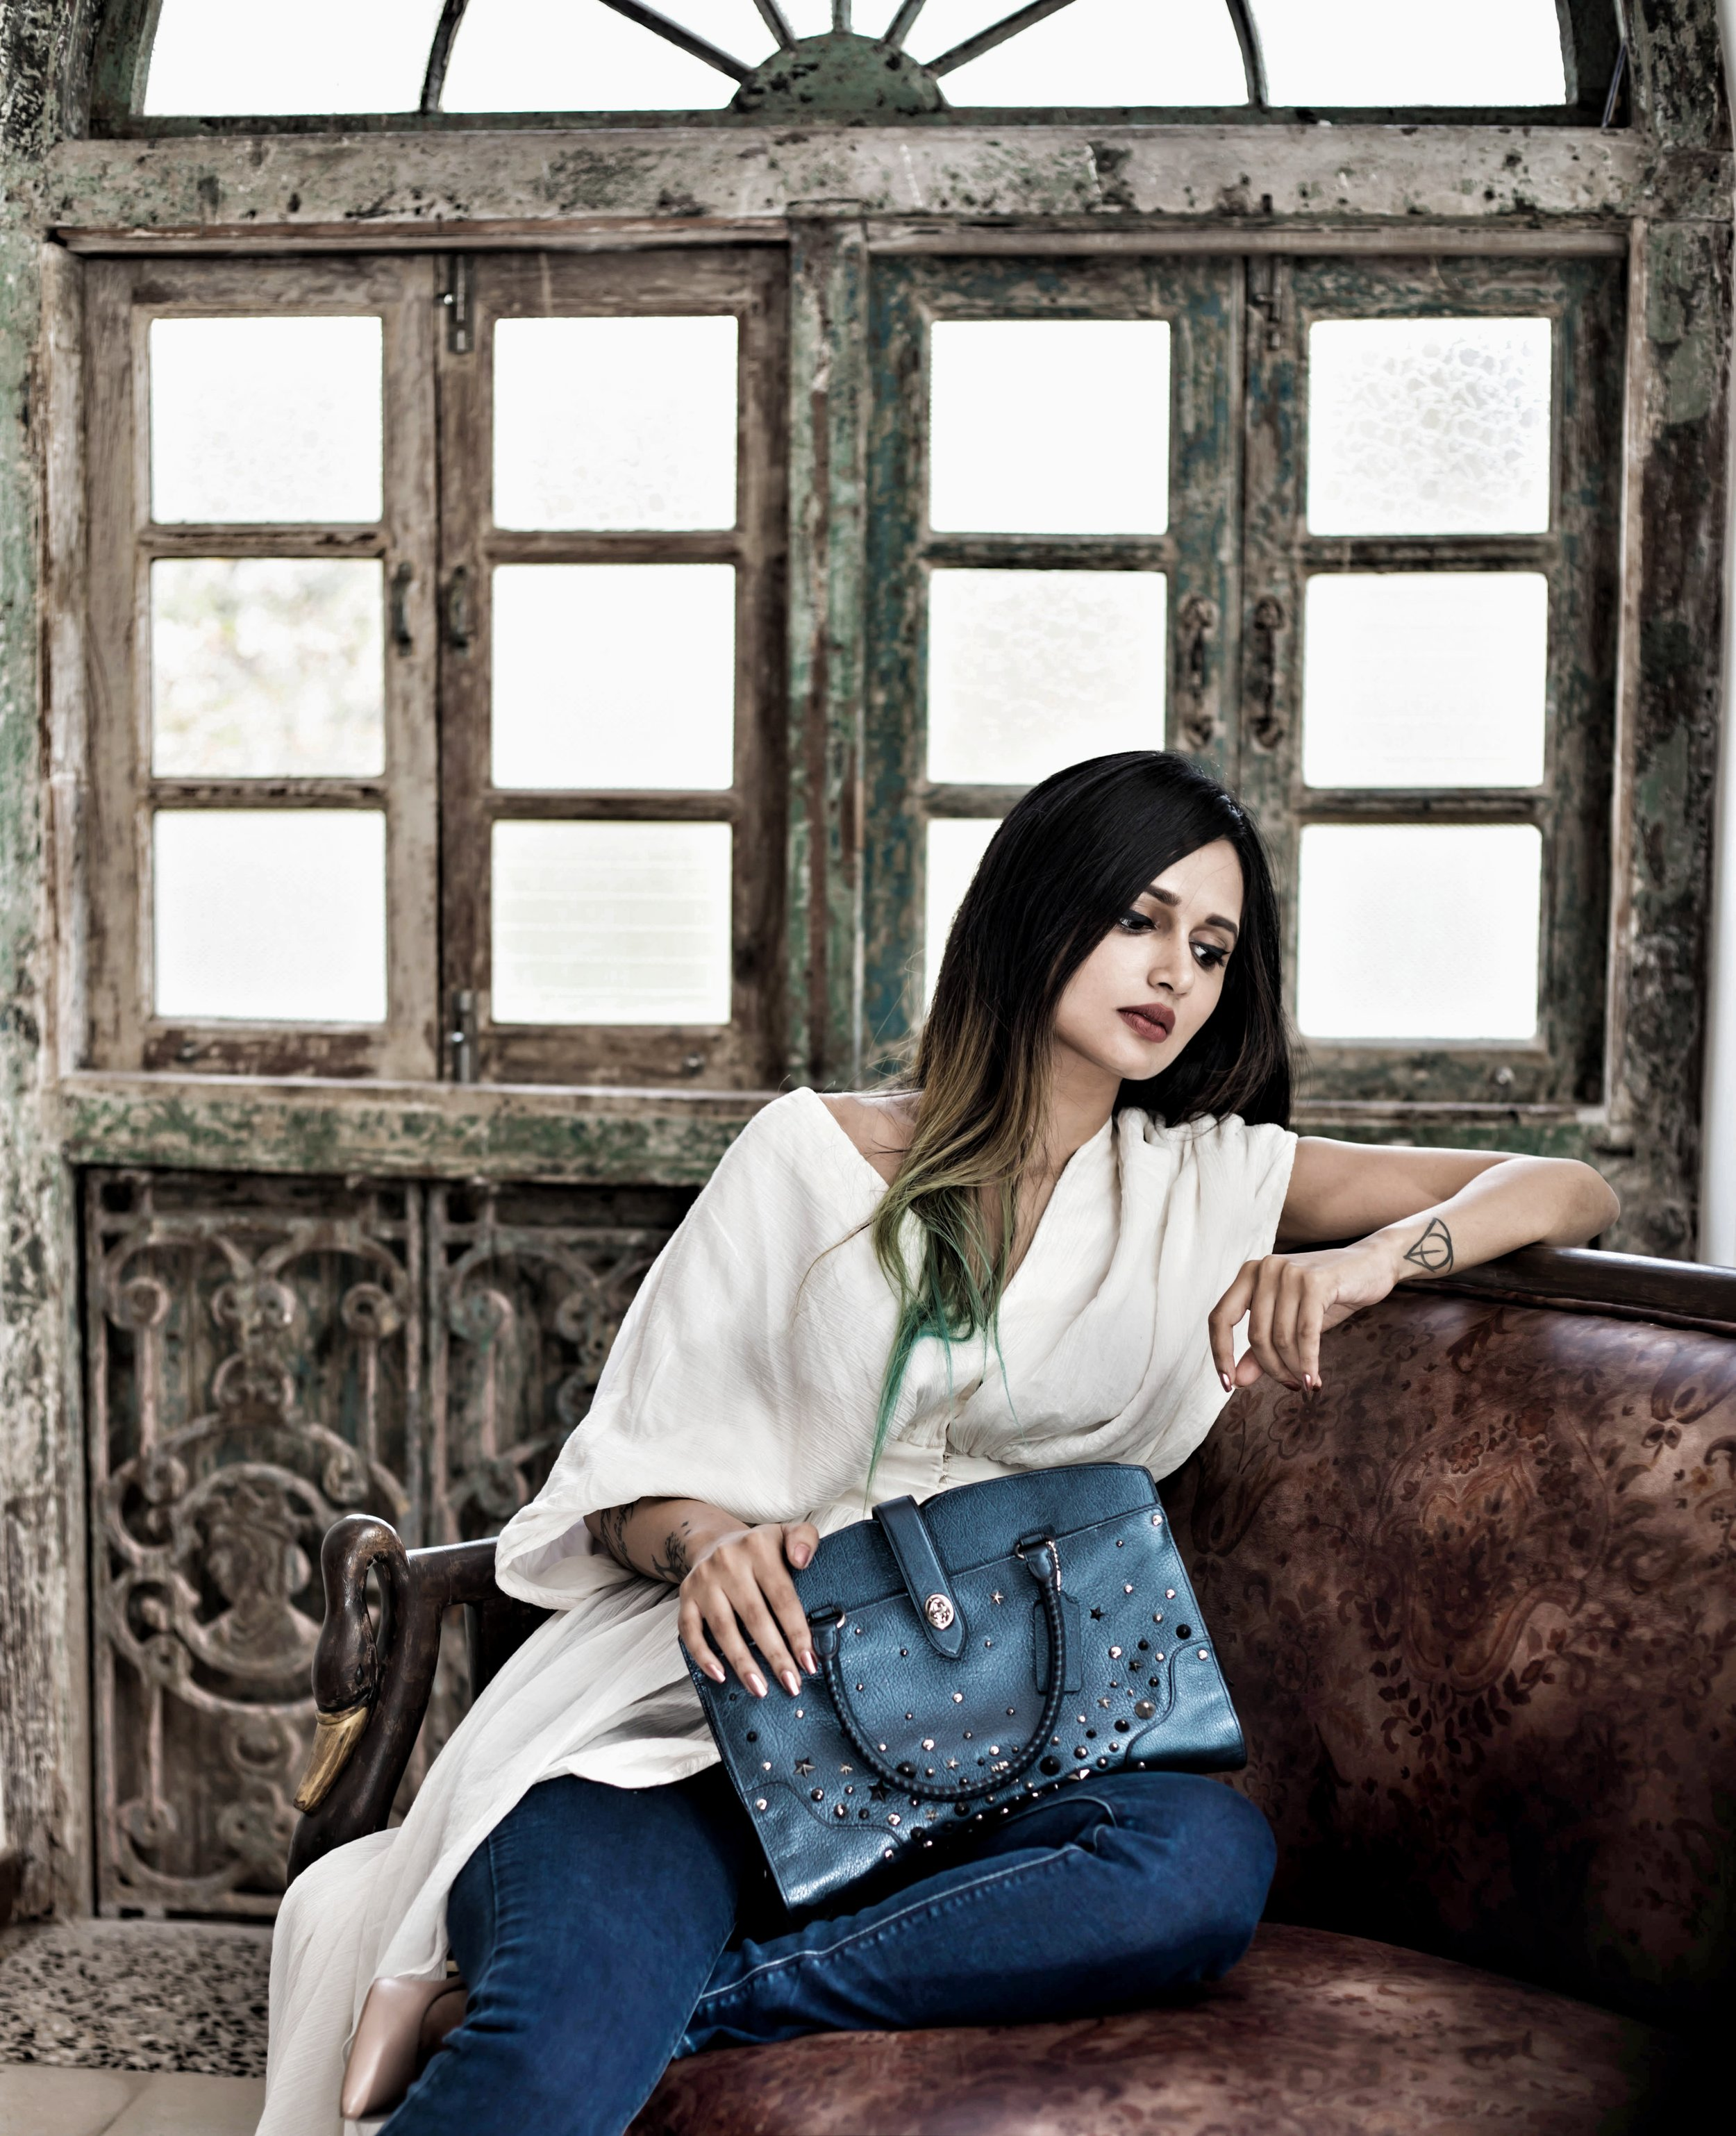 The-Chic-Armoire-by-Nidhi-Kunder-Coach-6